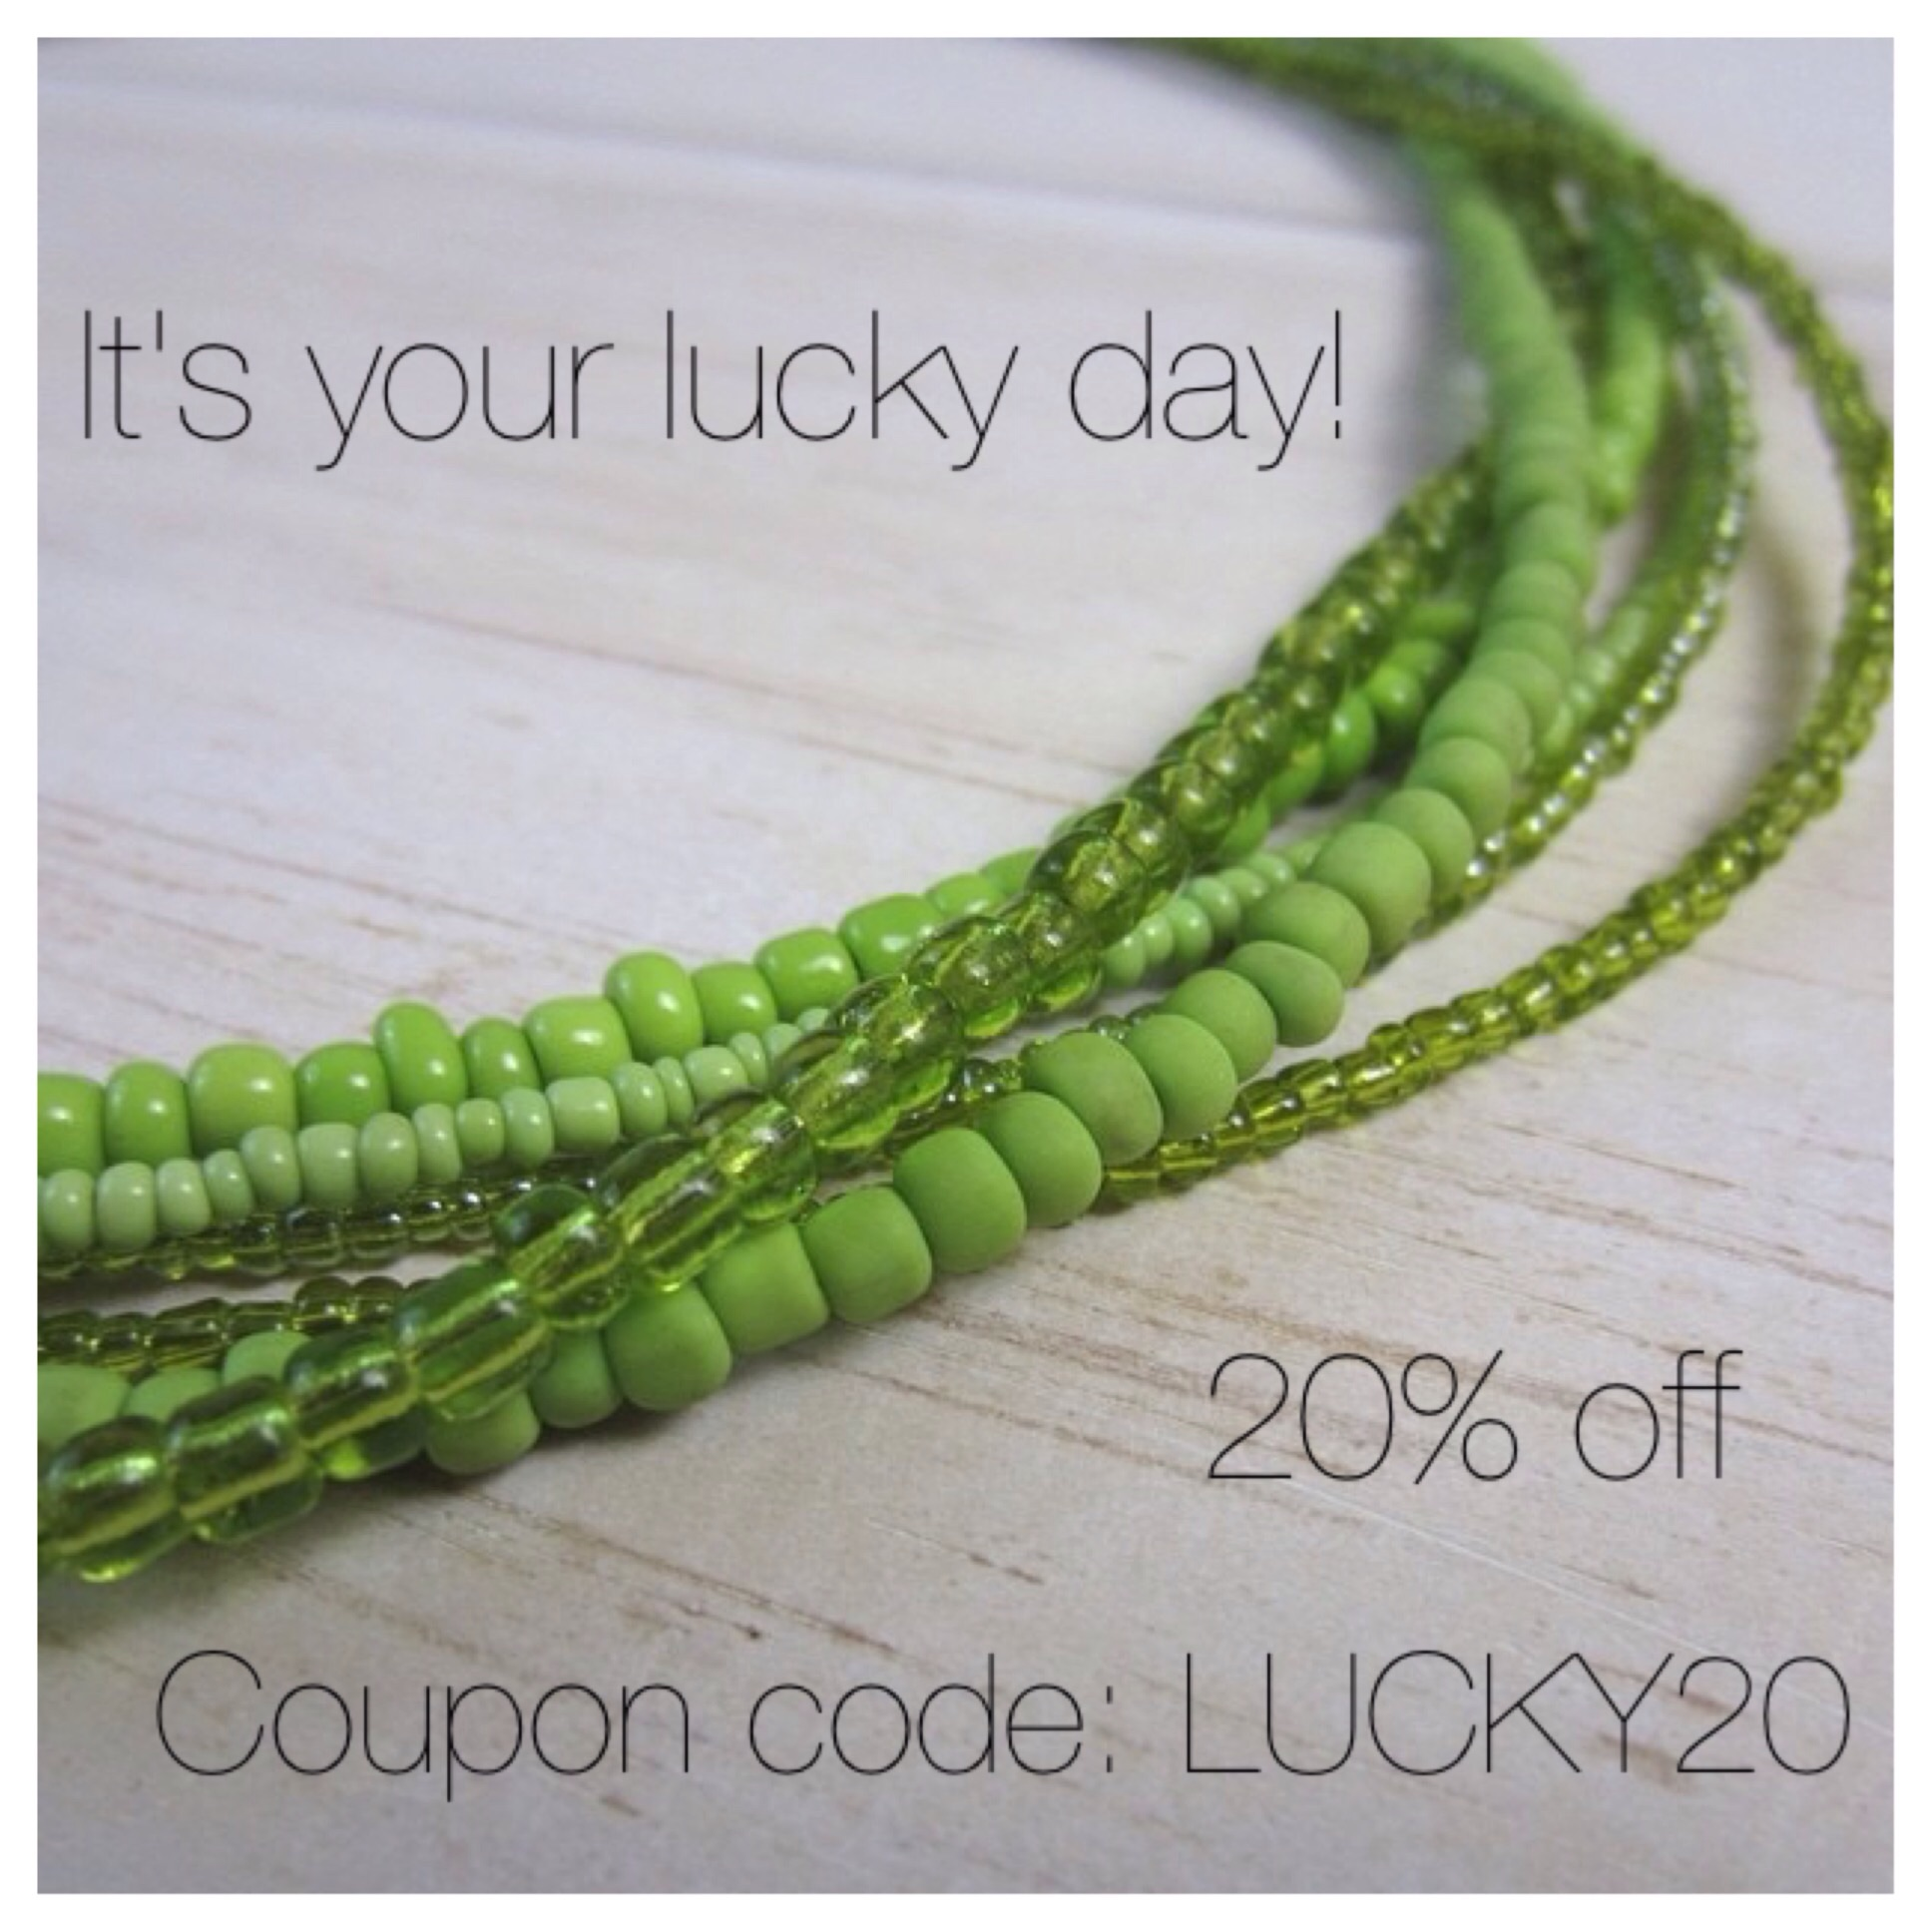 Coupon code expires midnight EST on 03/18/15.